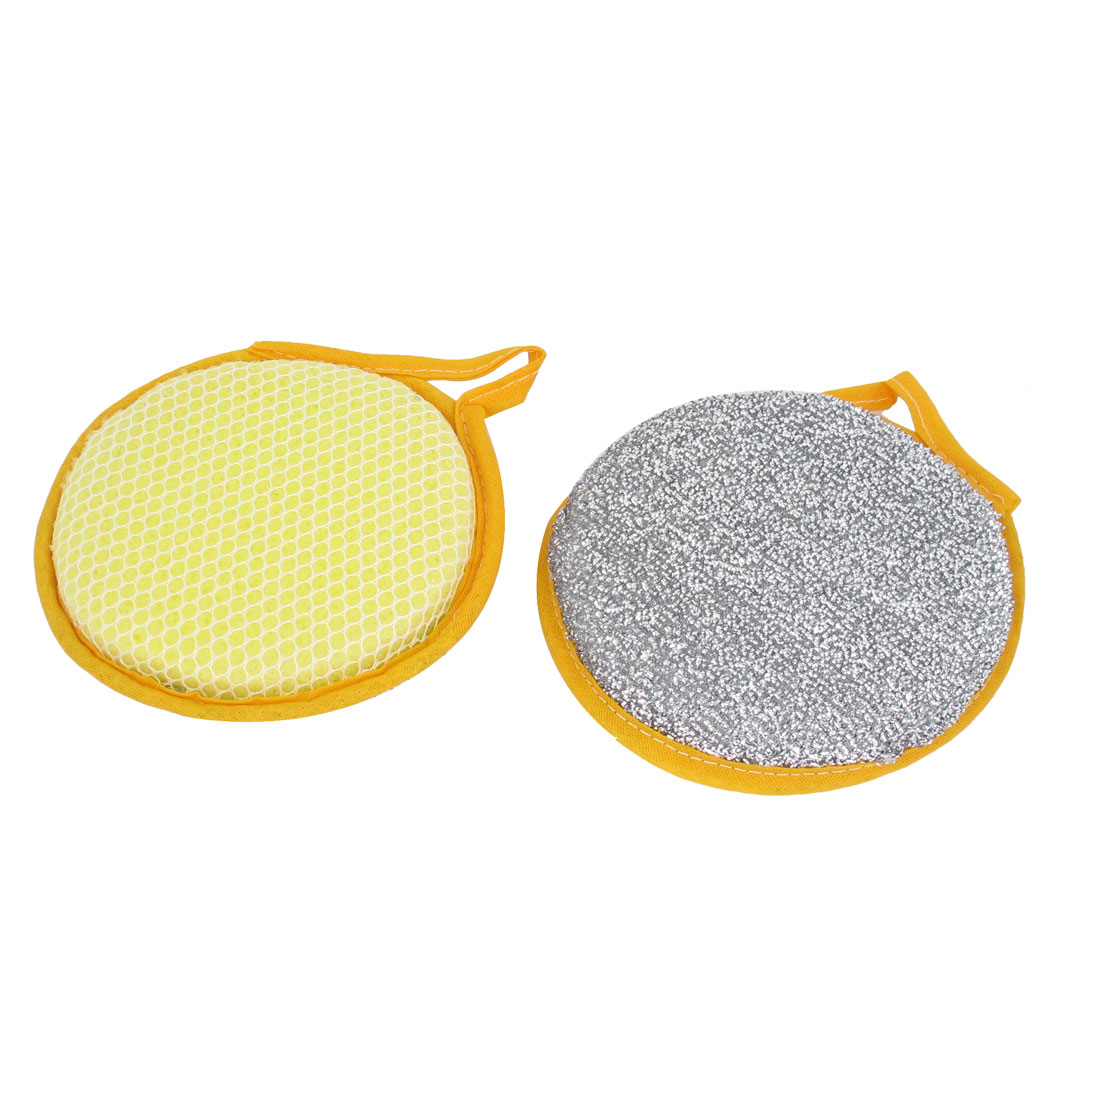 2pcs Yellow Silver Tone Round Shape Double Sides Bowl Dish Scrubber Scrub Pad Sponge Cleaner